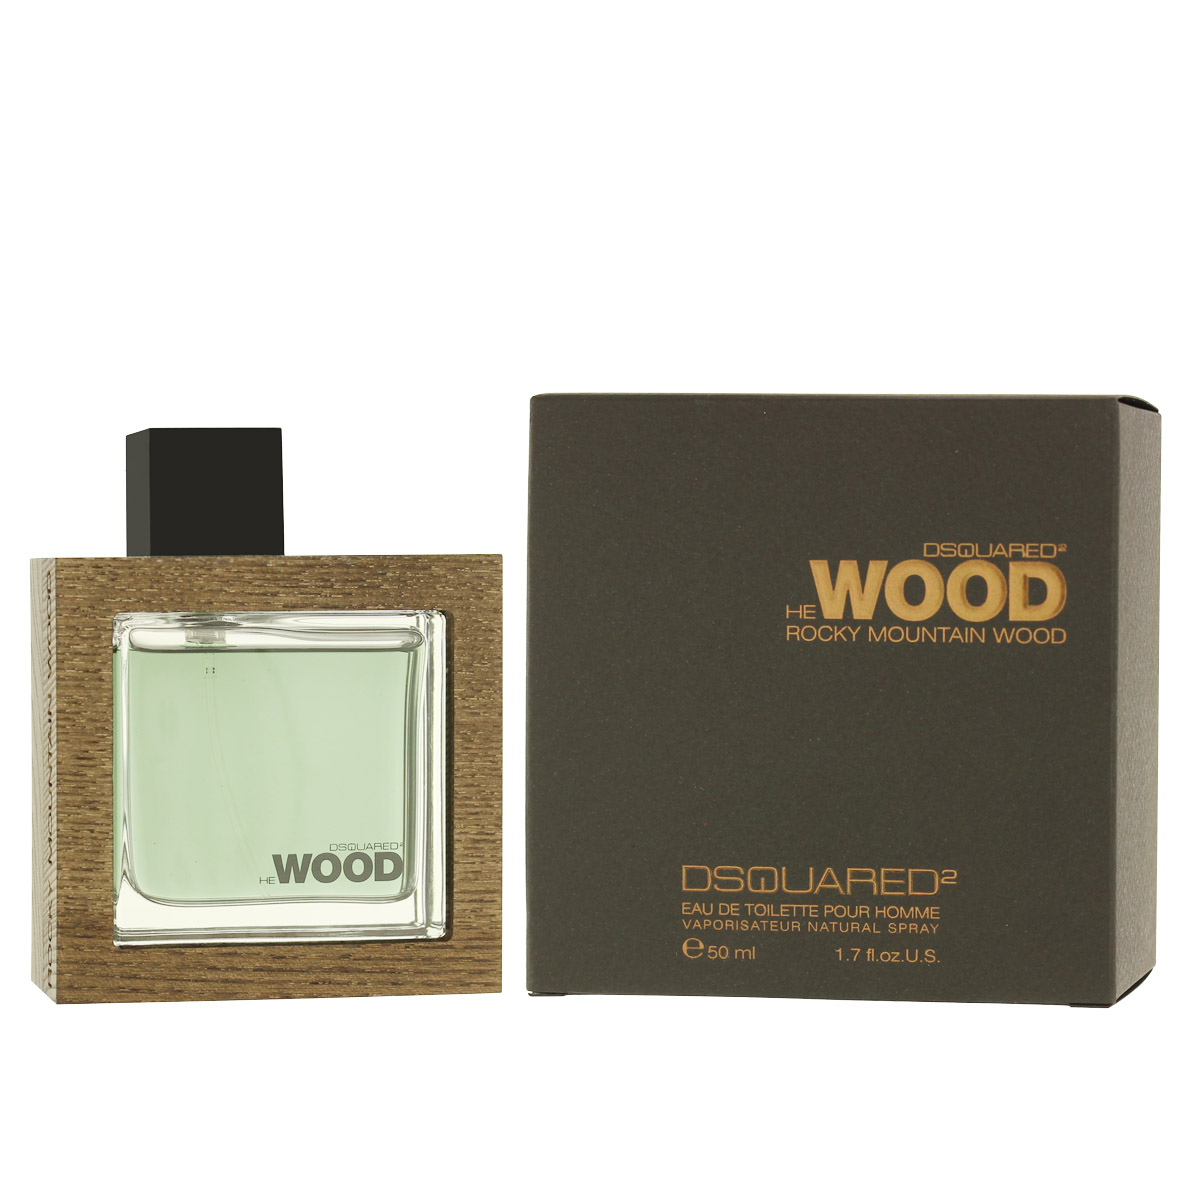 Dsquared2 He Wood Rocky Mountain Wood EDT 50 ml M